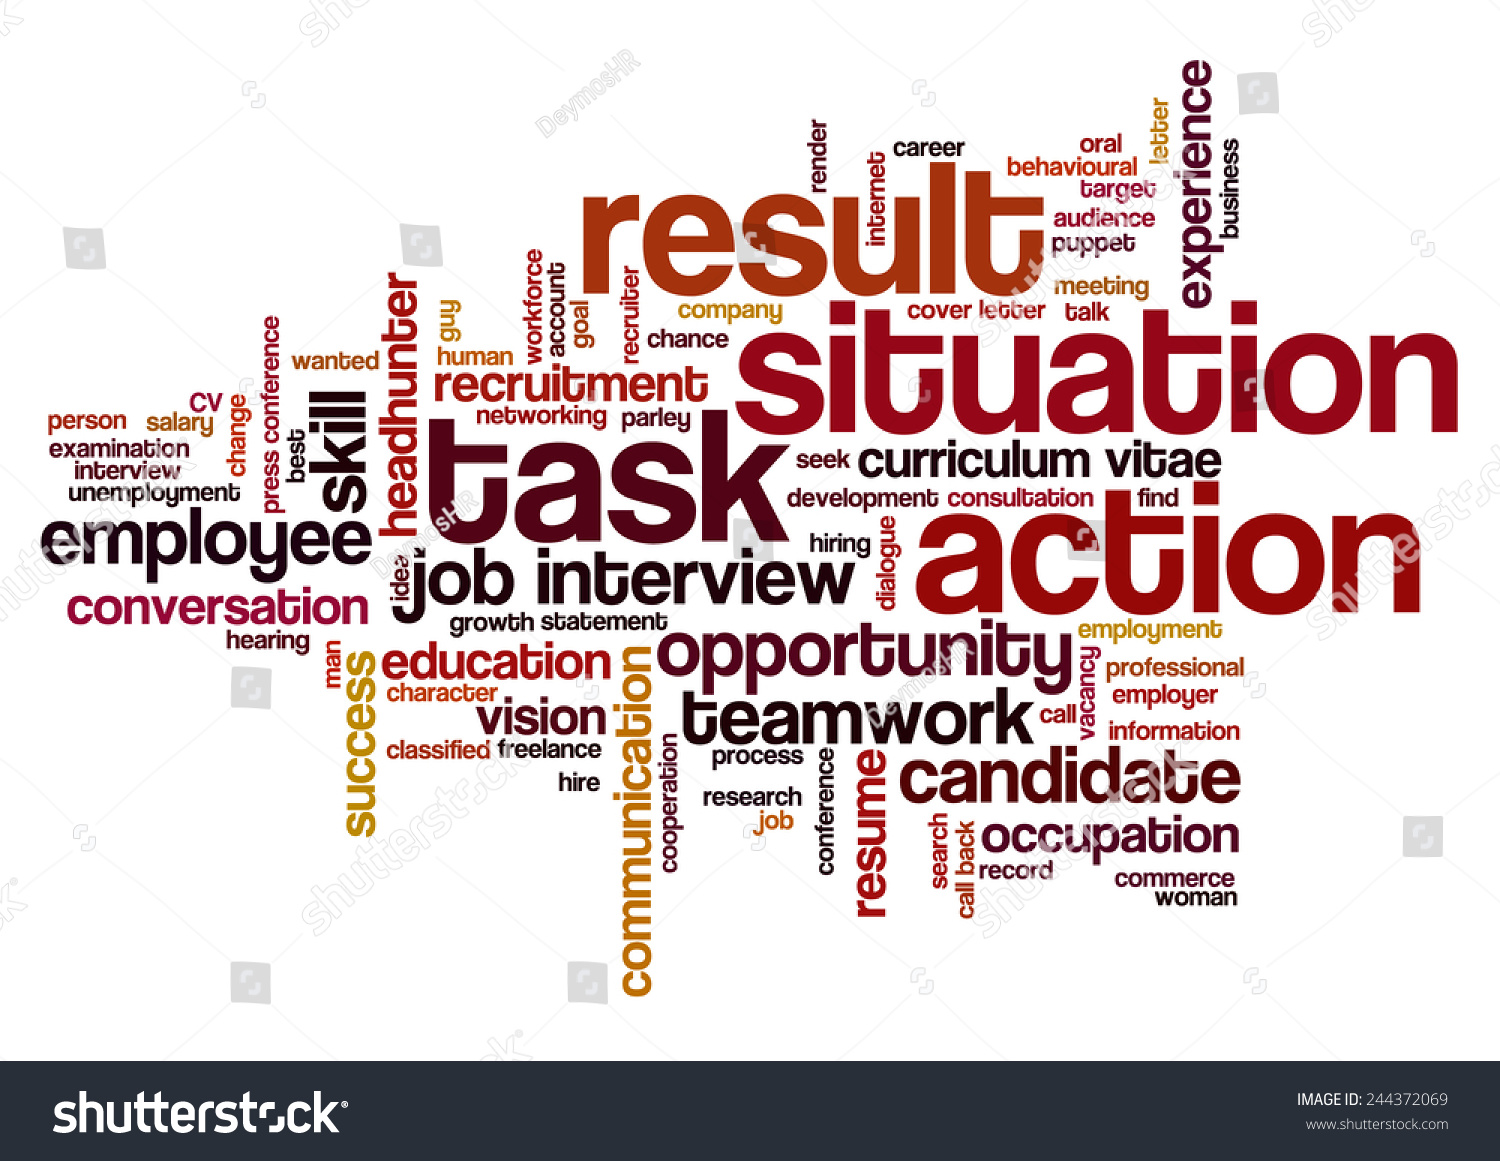 royalty word cloud related to behavioral job 244372069 word cloud related to behavioral job interview keywords situation task action and result emphasized star model stock vector